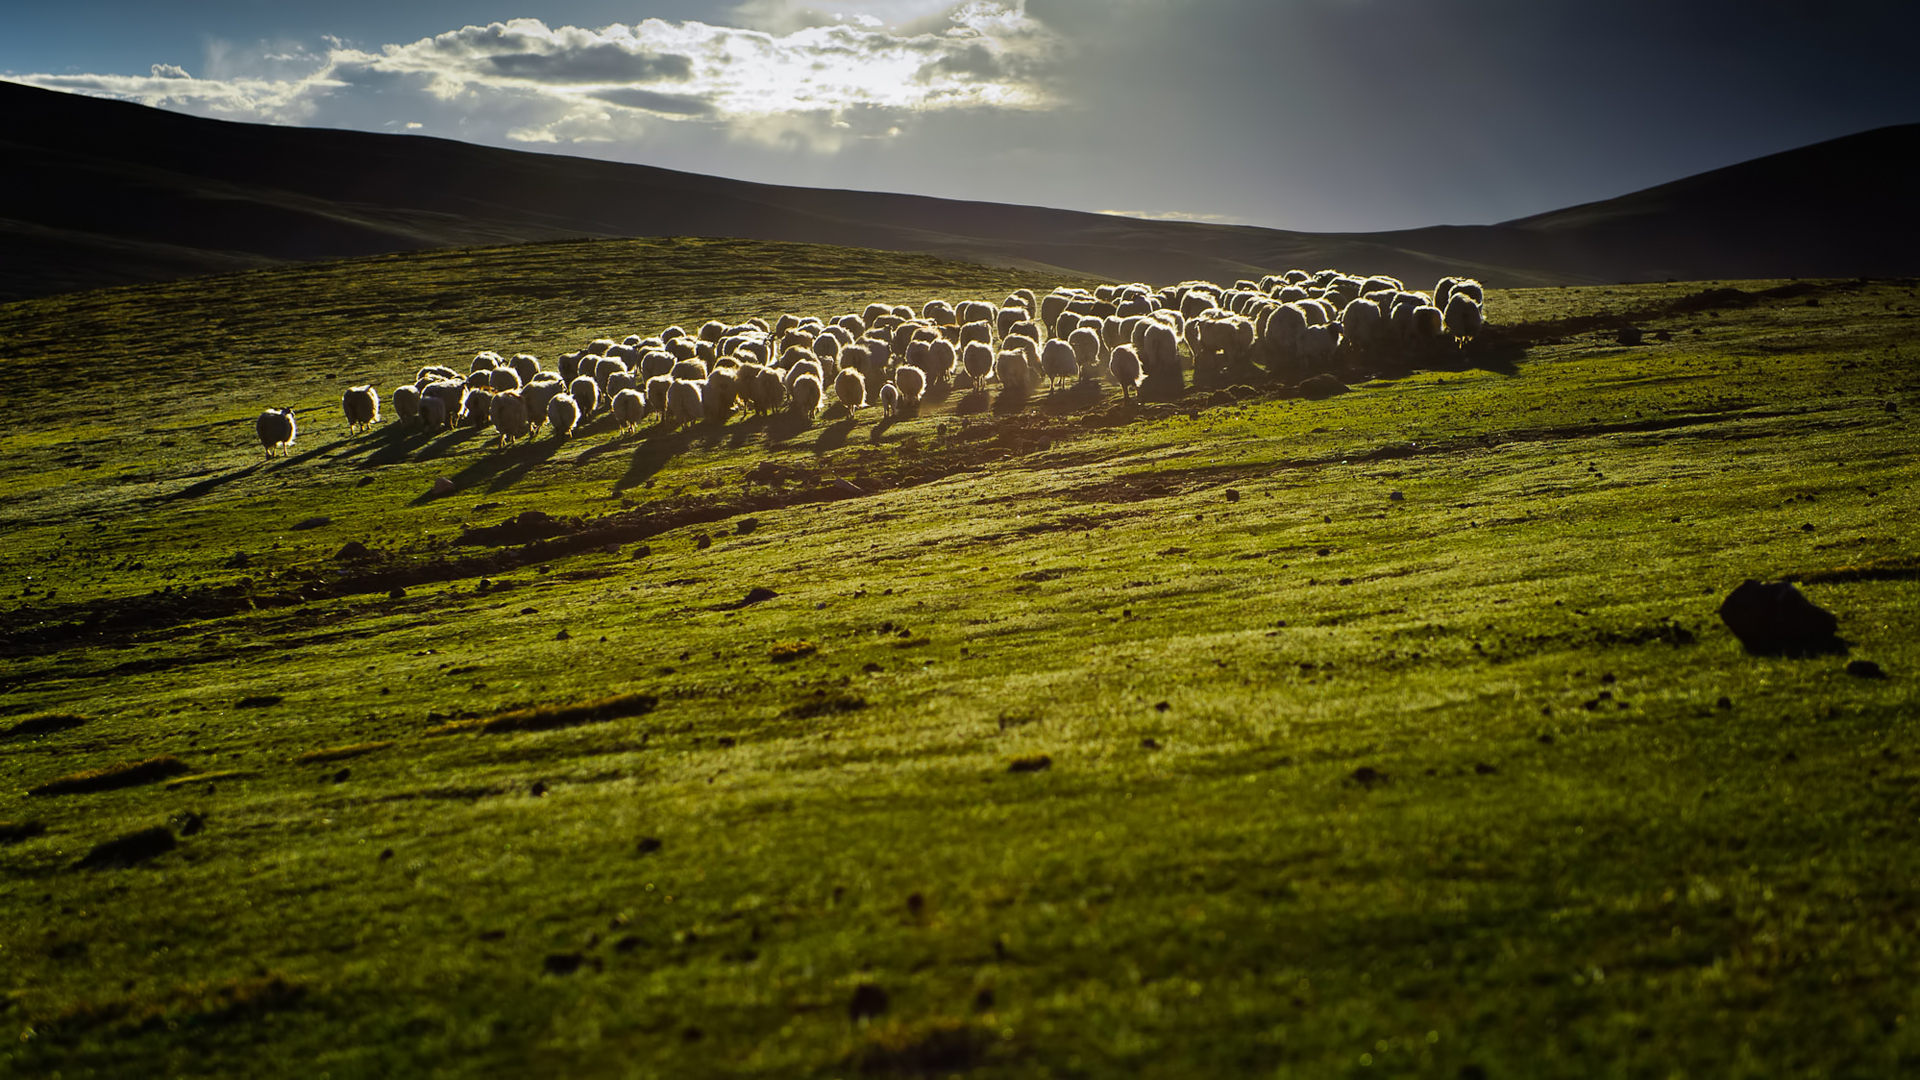 Sheep 9 Animals Minimalistic Wallpapers For Iphone: Sheep Full HD Wallpaper And Background Image